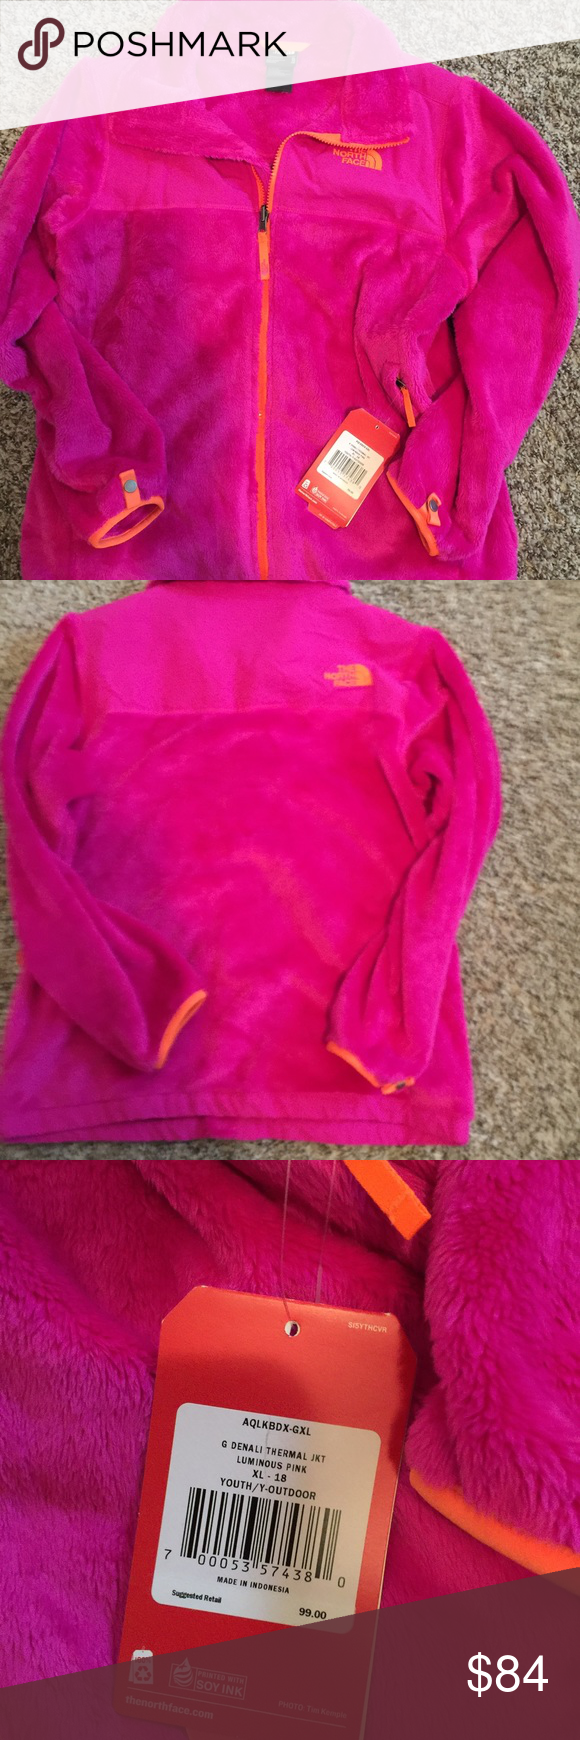 NWT Denali thermal jacket XL Luminous Pink Denali North Face with tag  $99 North Face Jackets & Coats